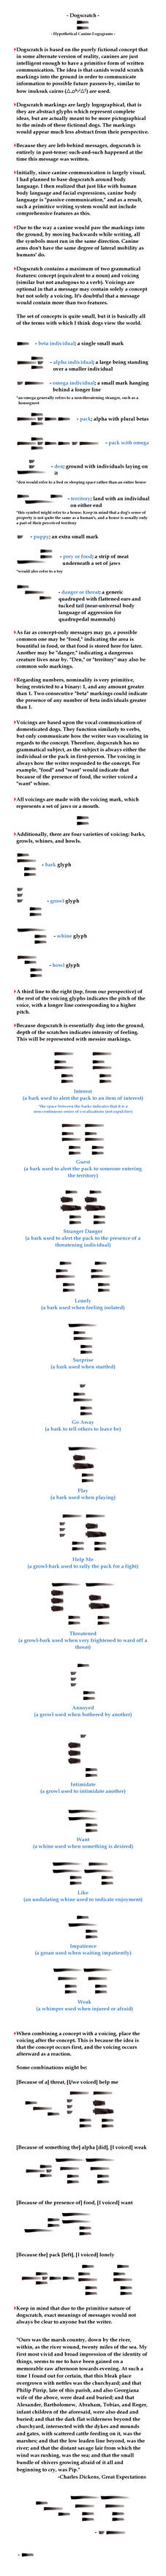 Dogscratch, a Canine Writing System